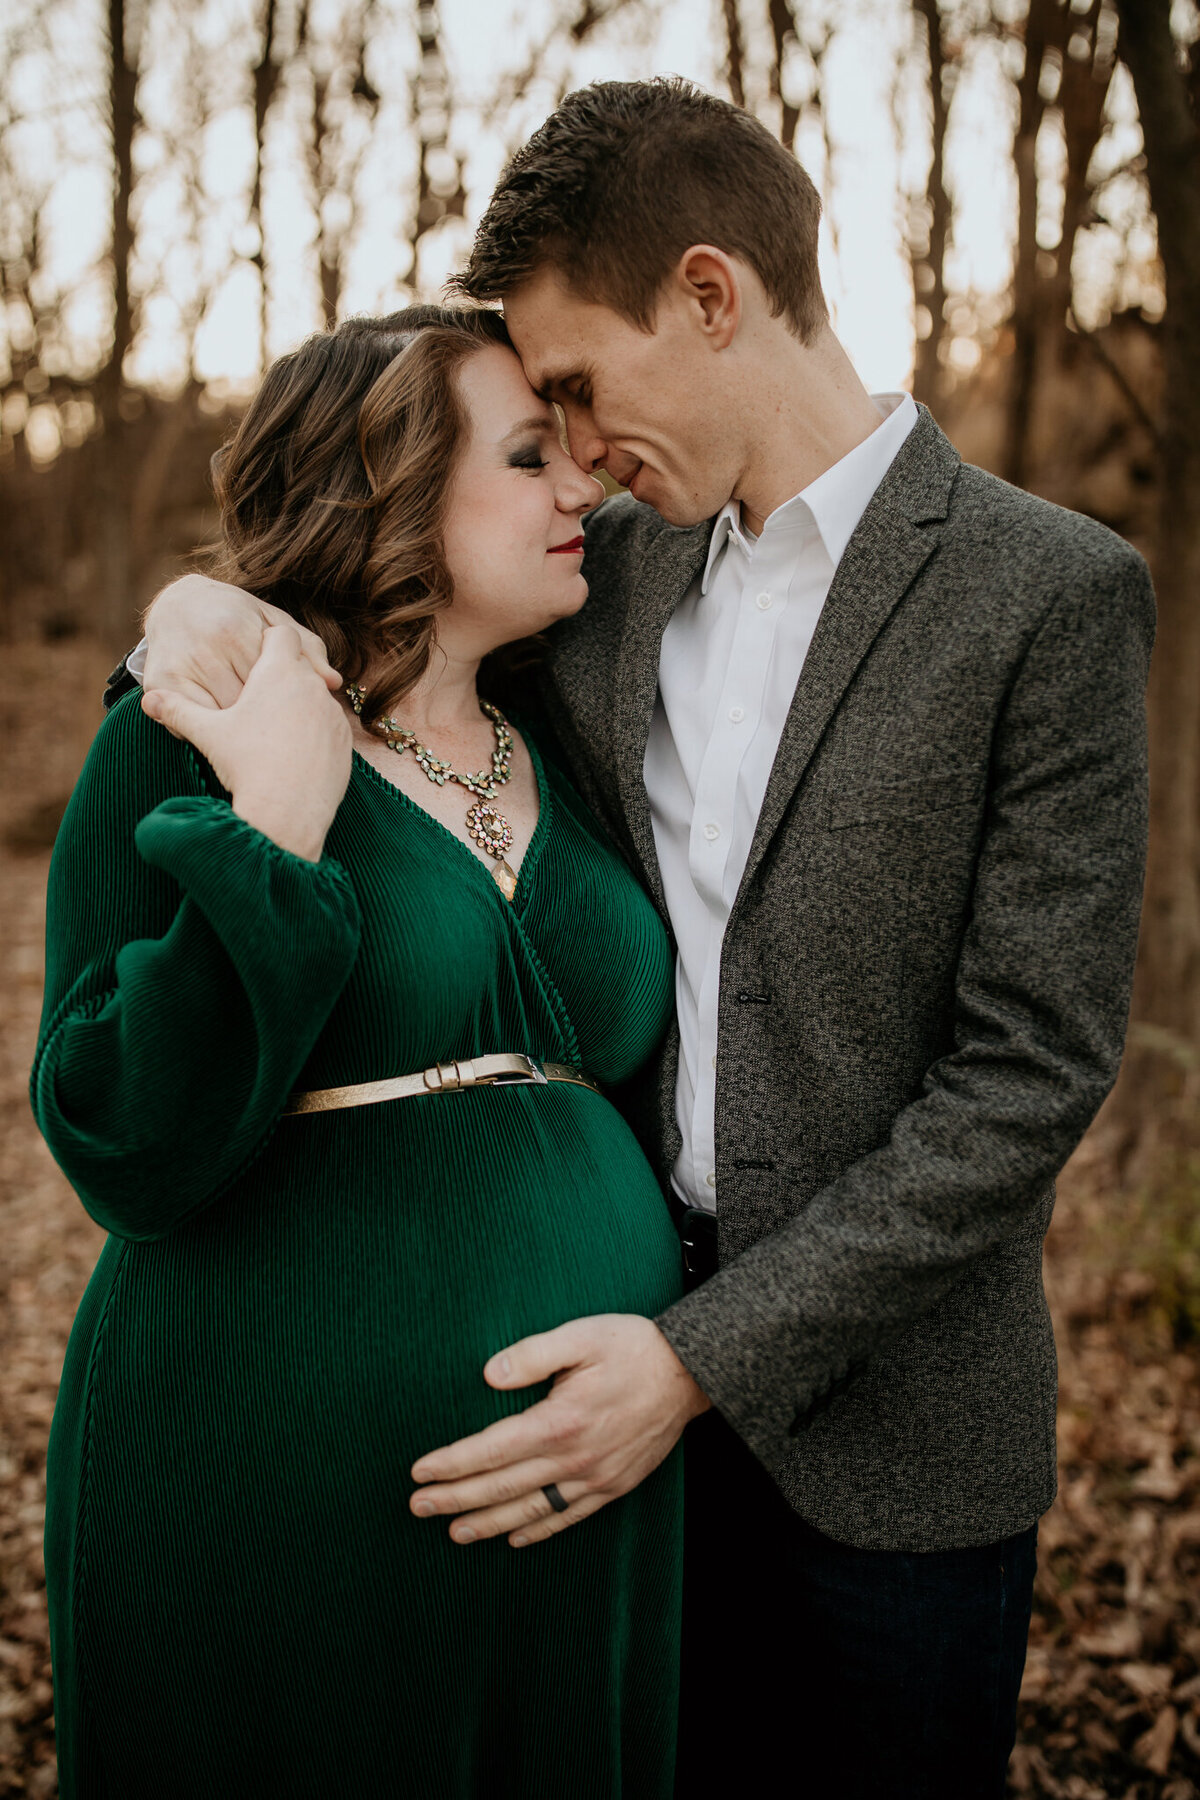 Katie Todd Maternity Photographer Wichita Kansas Andrea Corwin Photography web (39 of 46)